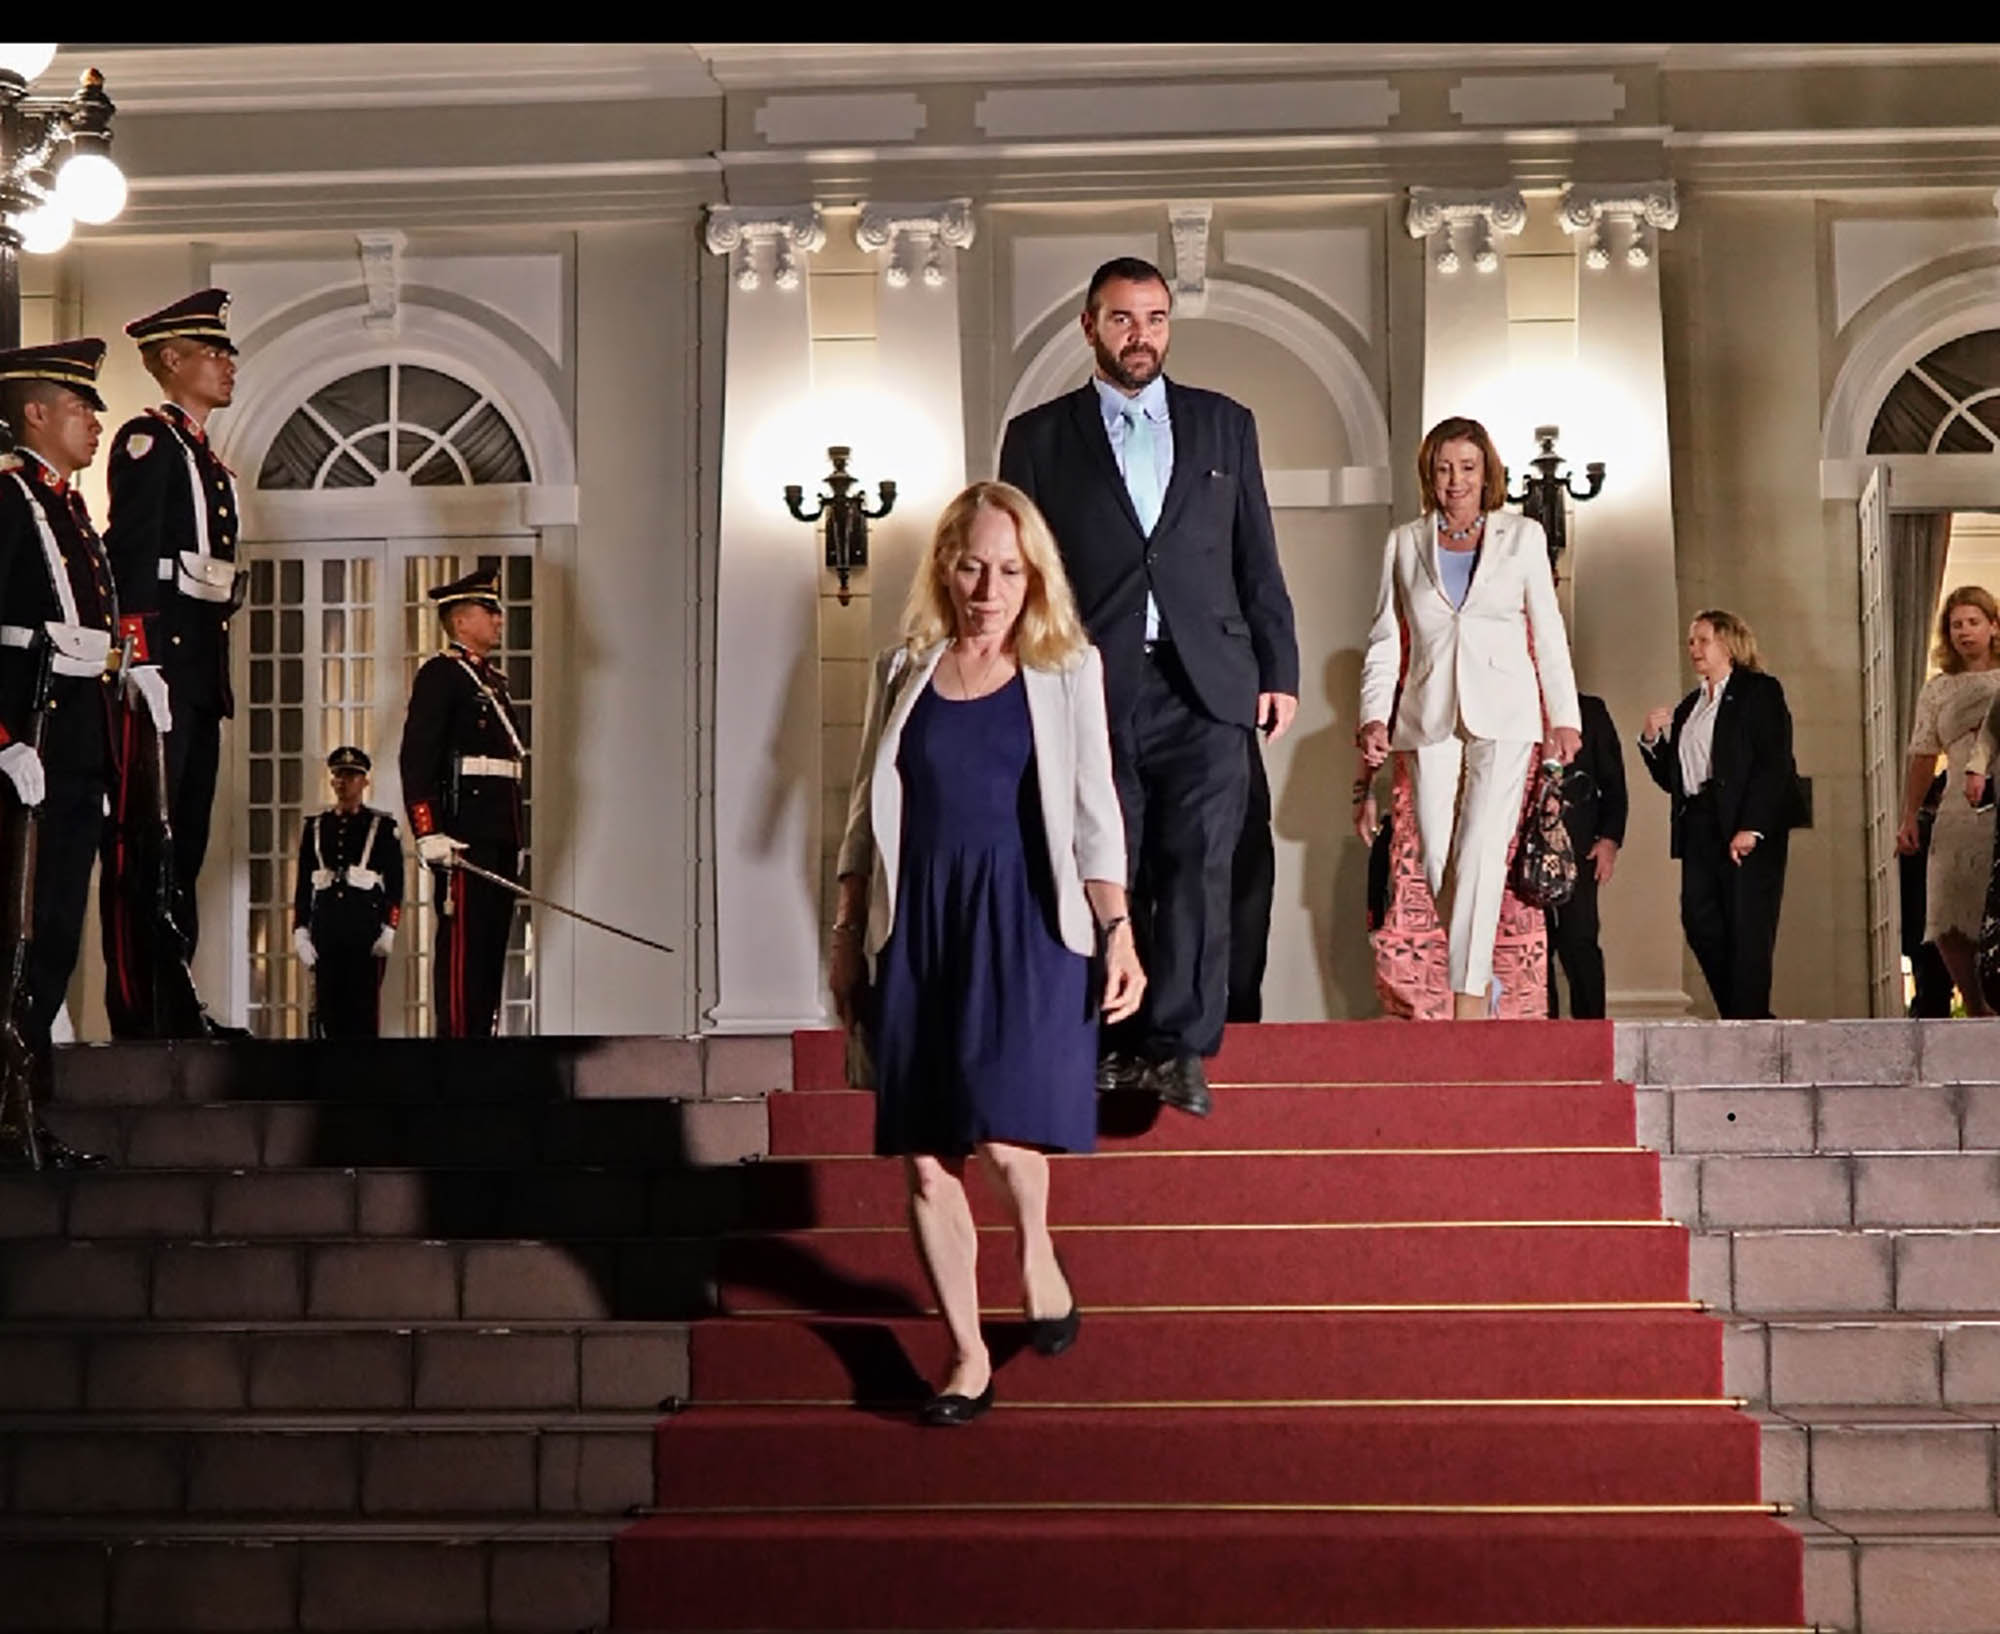 Mary Gay Scanlon and Nancy Pelosi got the red carpet treatment from President Nayib Bukele in El Salvador.